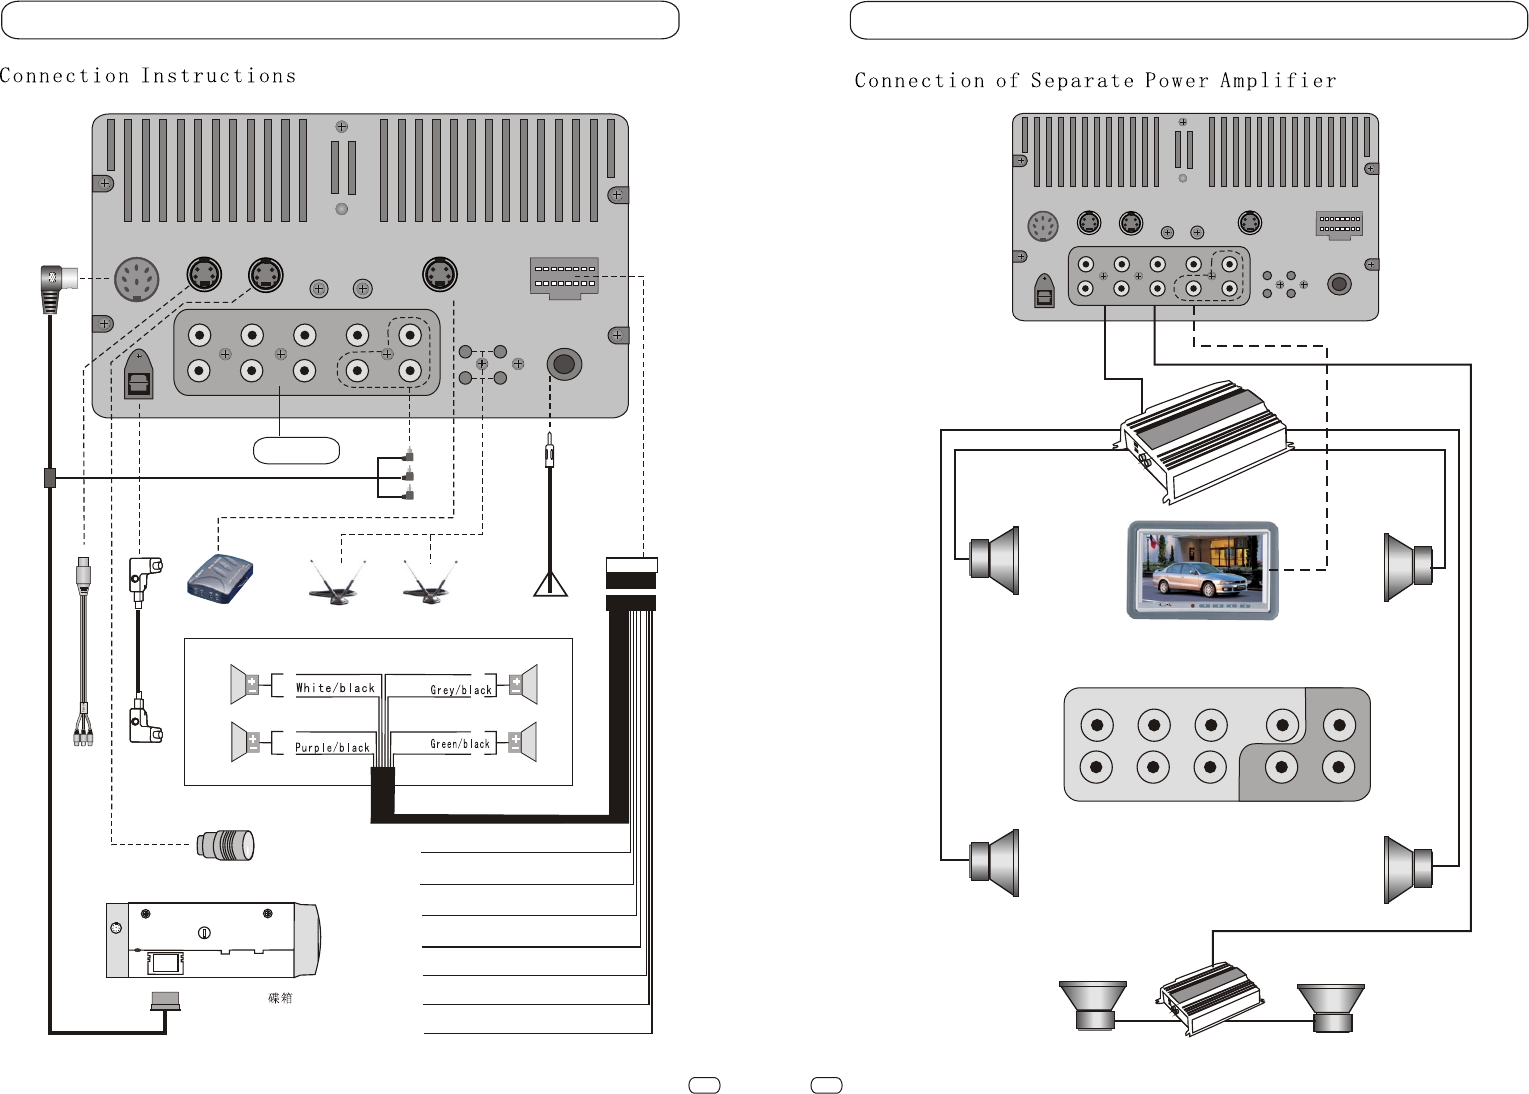 d605271b e0b7 480a 889d 6c4088a33dda bg5 page 5 of performance teknique car stereo system icbm 1 touch user performance teknique icbm 9778 wire diagram at edmiracle.co